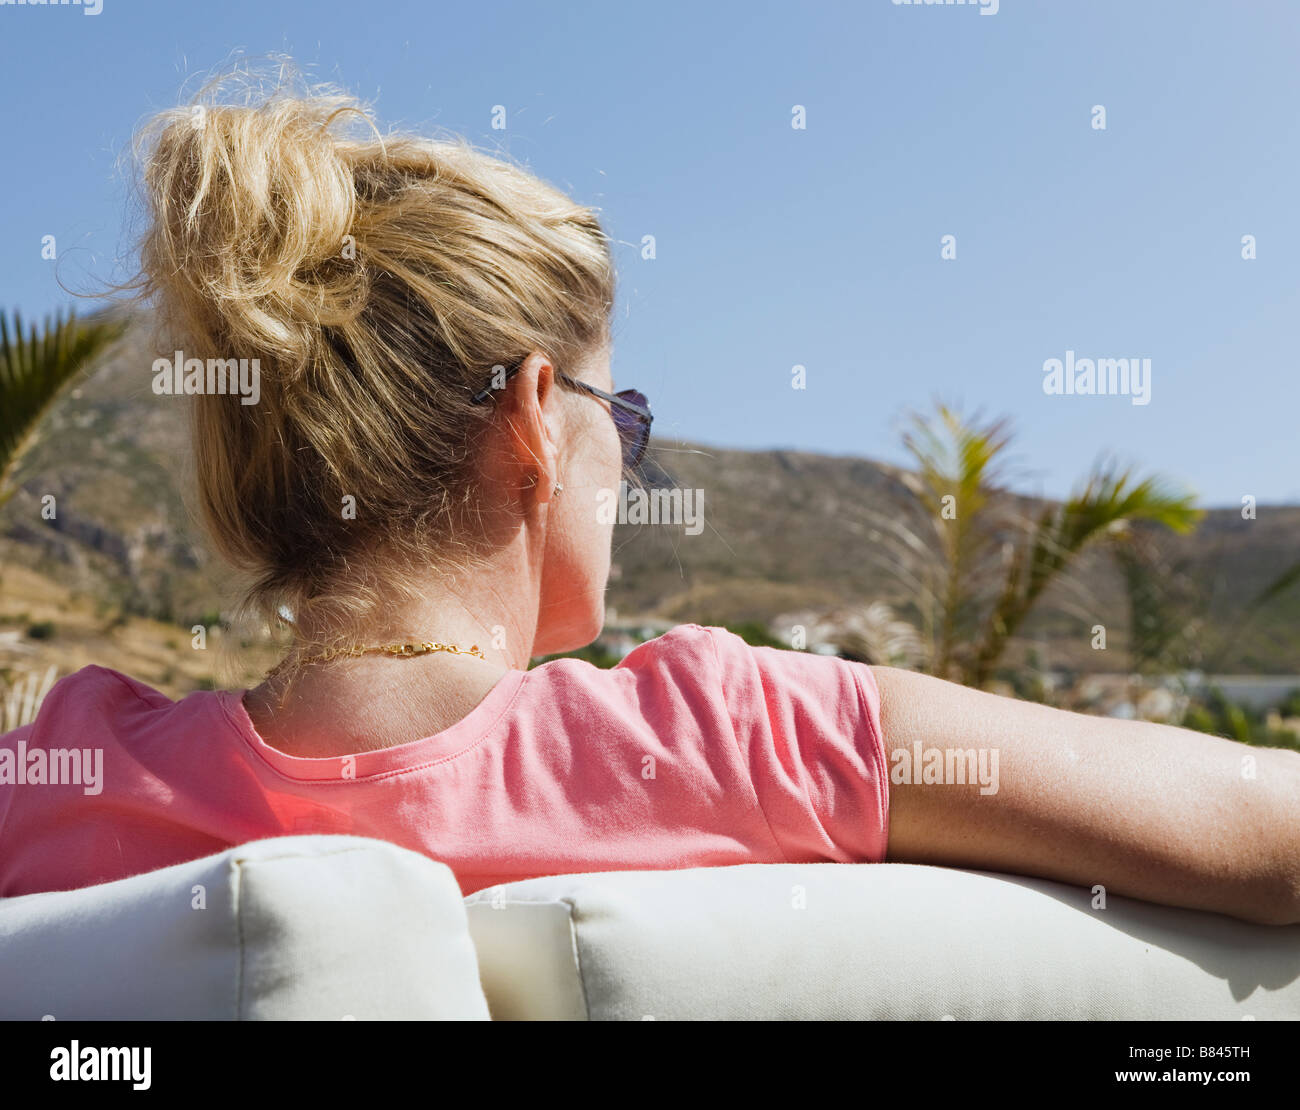 Middle aged lady relaxing in luxurious surroundings - Stock Image